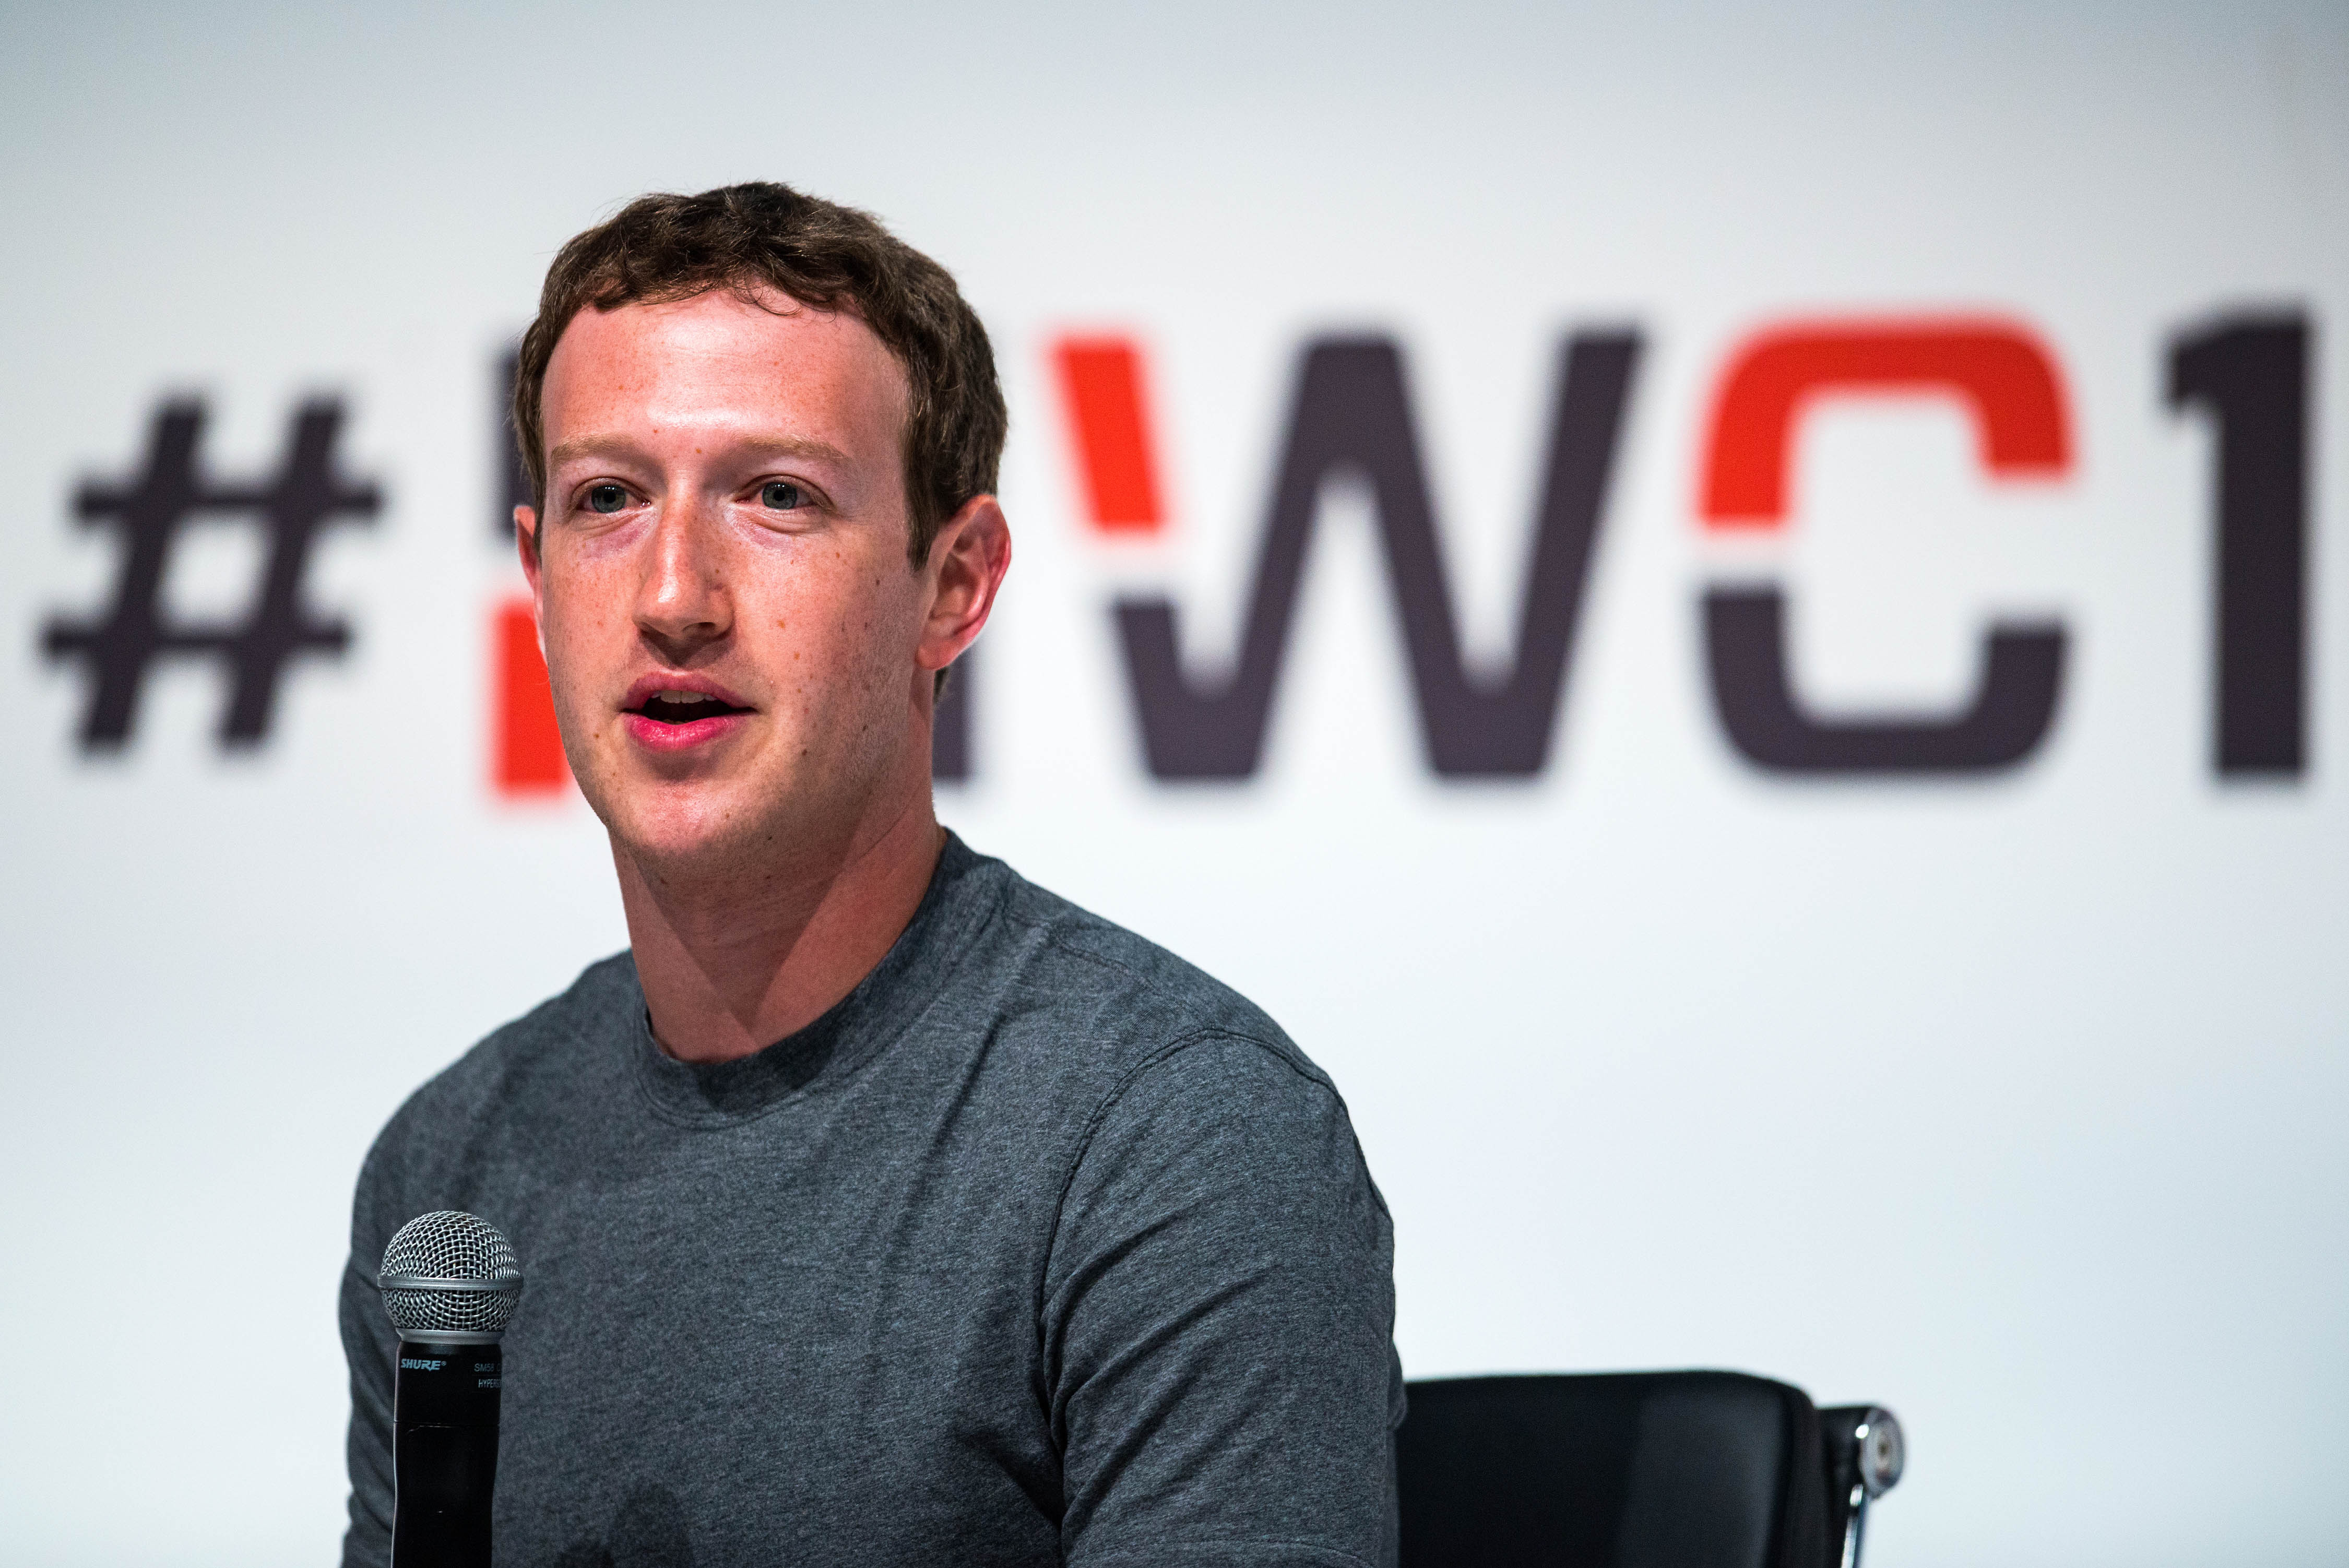 Mark Zuckerberg speaks during his keynote conference during the first day of the Mobile World Congress 2015 in Barcelona, Spain on March 2, 2015.